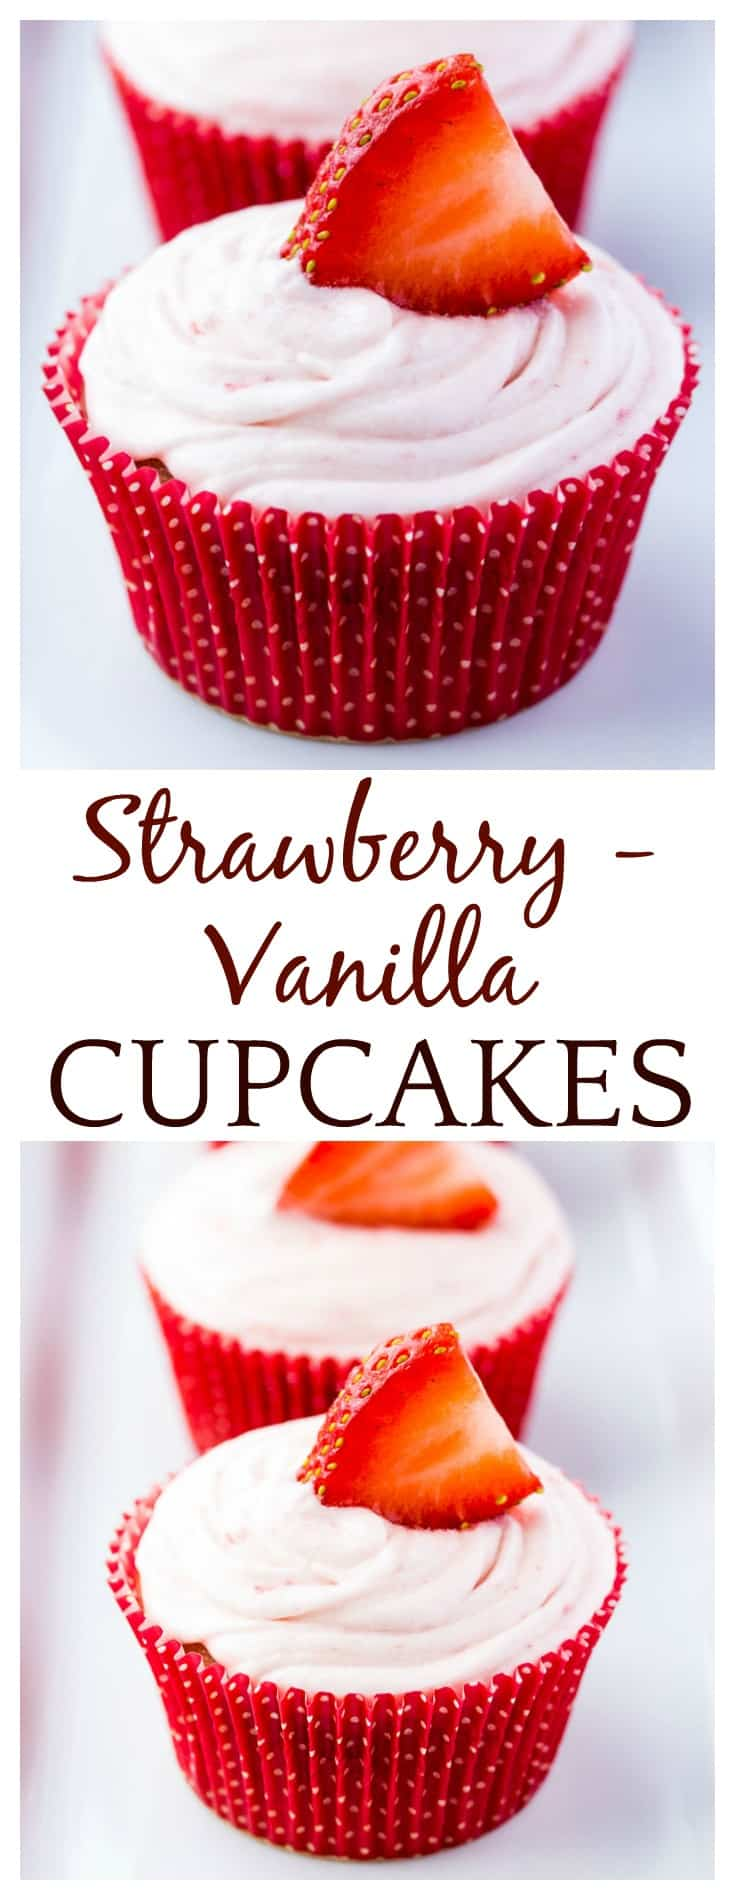 These Strawberry Vanilla Cupcakes with Strawberry Vanilla Icing will most definitely satisfy your sweet tooth! This is an easy recipe that's perfect for Valentine's Day and any and all Spring parties! | #cupcakes #baking #strawberry #strawberries #dlbrecipes